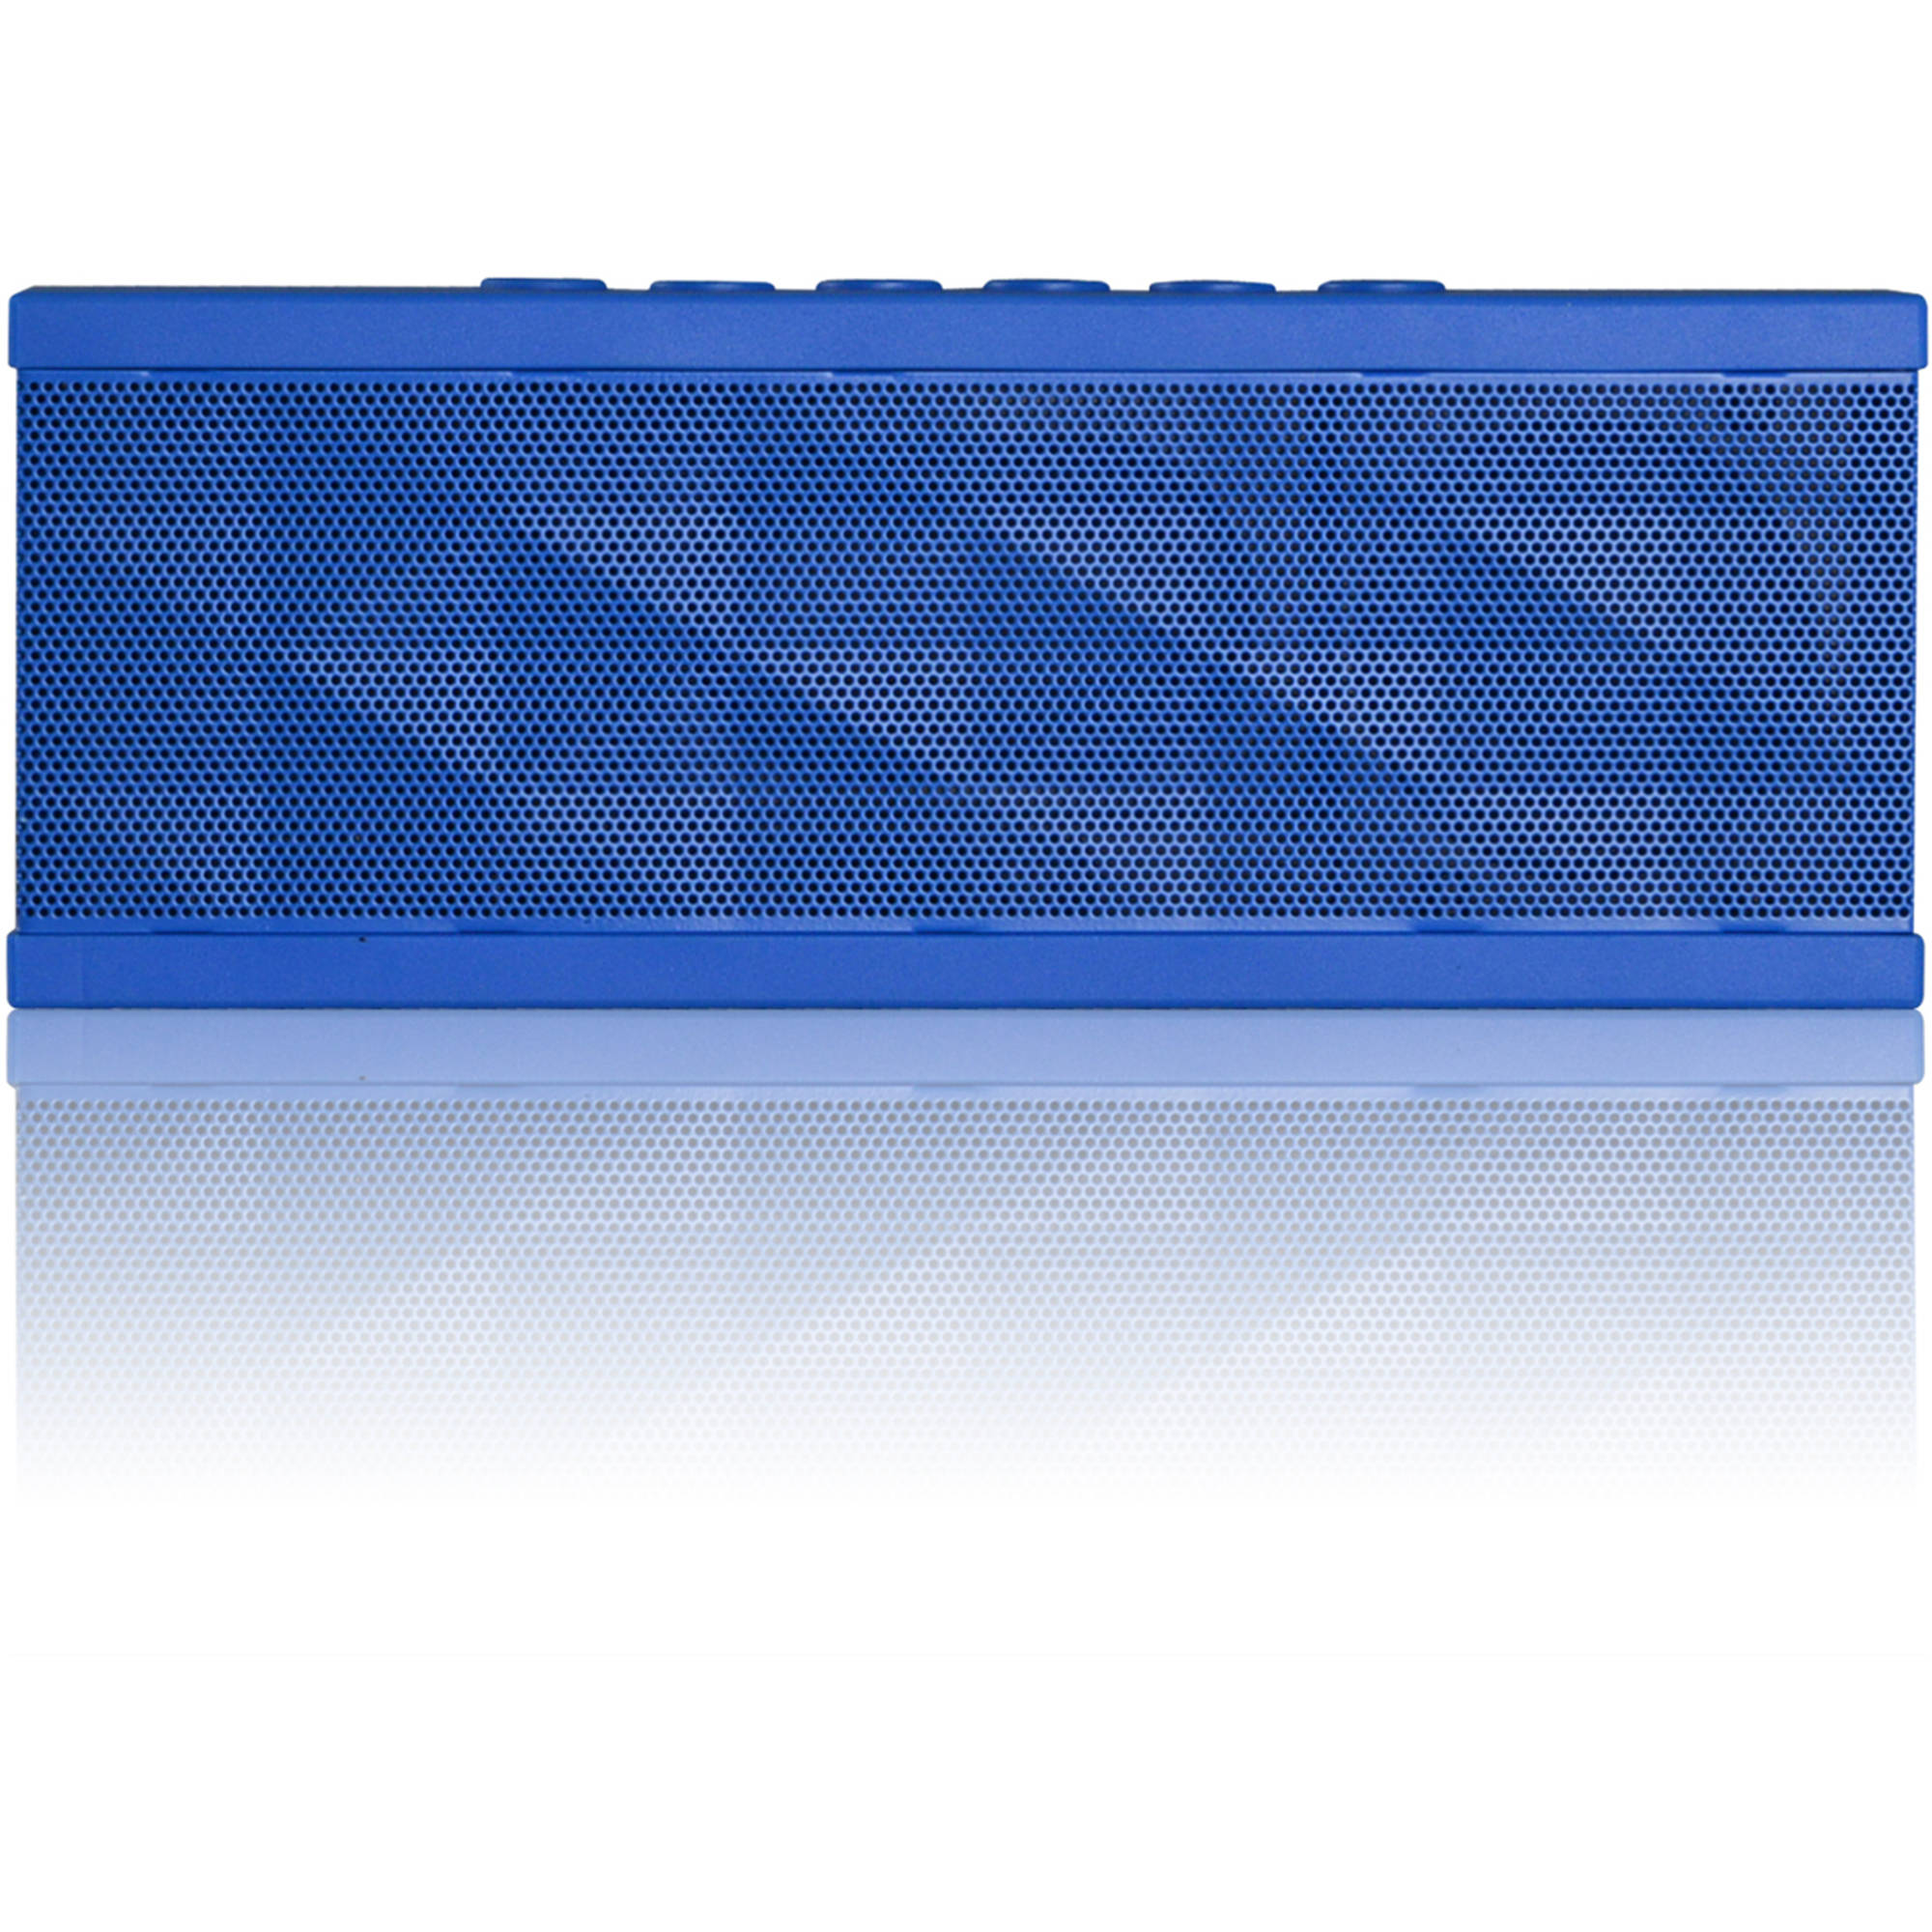 SoundBot SB571 Bluetooth Wireless Portable Speaker for 12-Hour Music Streaming & Hands-Free Calling, Blue on Blue